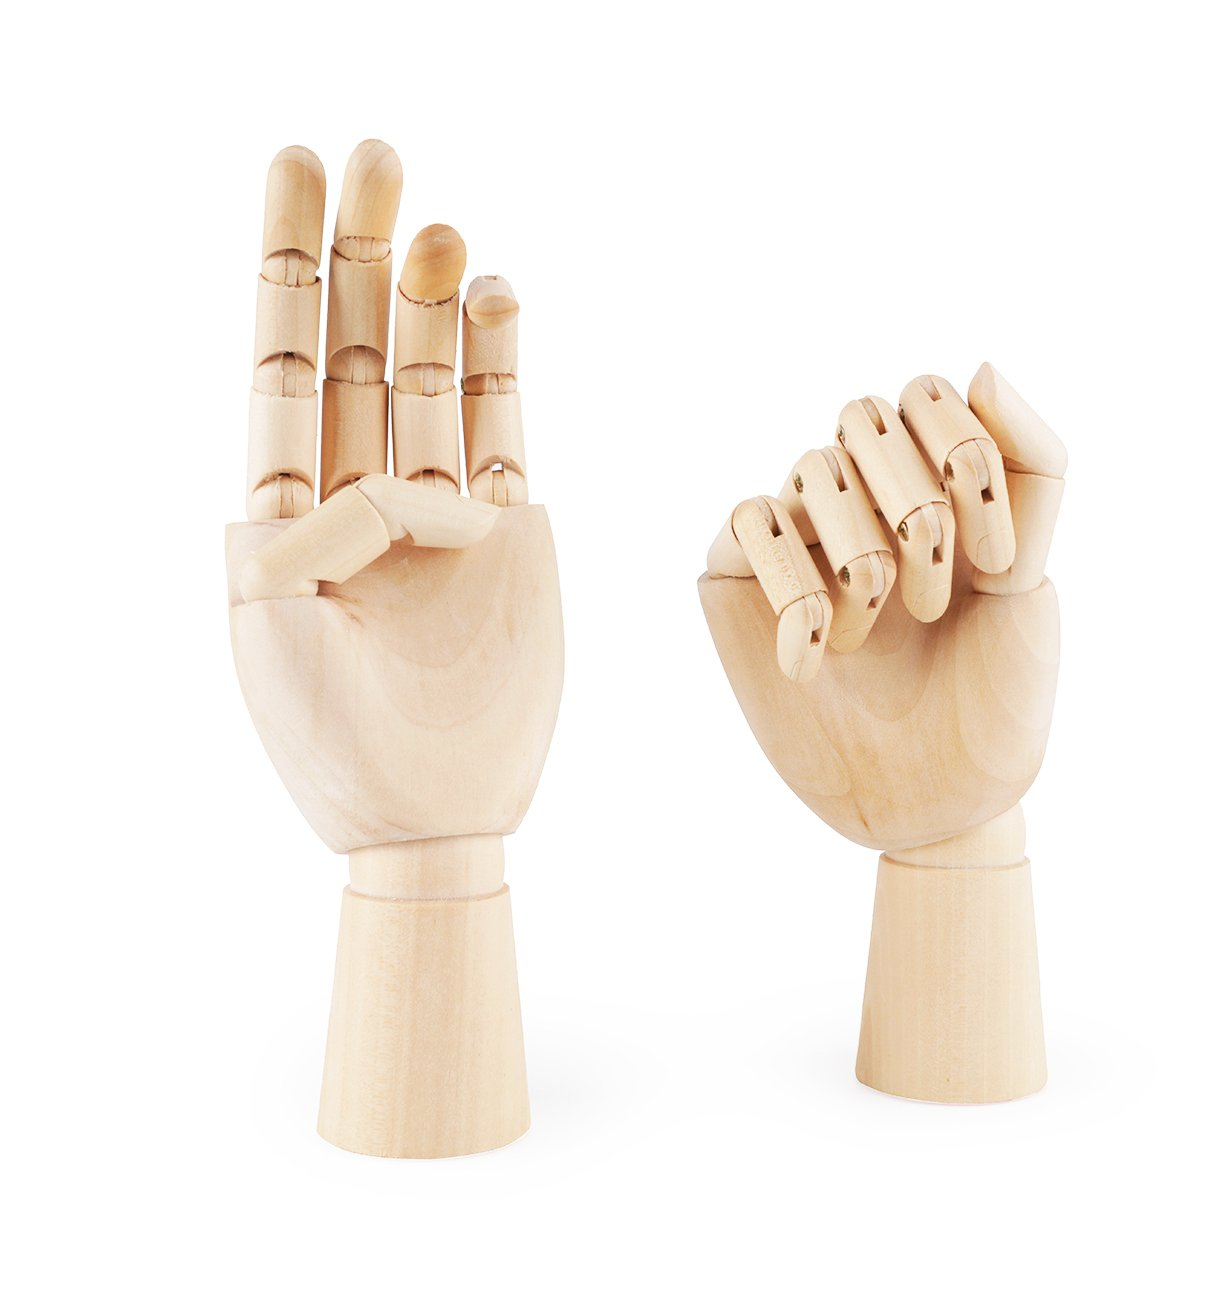 Fashionclubs 7'' Wooden Sectioned Opposable Articulated Left/Right Hand Figure Manikin Hand Model for Drawing, Sketching, Painting (Left+Right Hand) by Fashionclubs